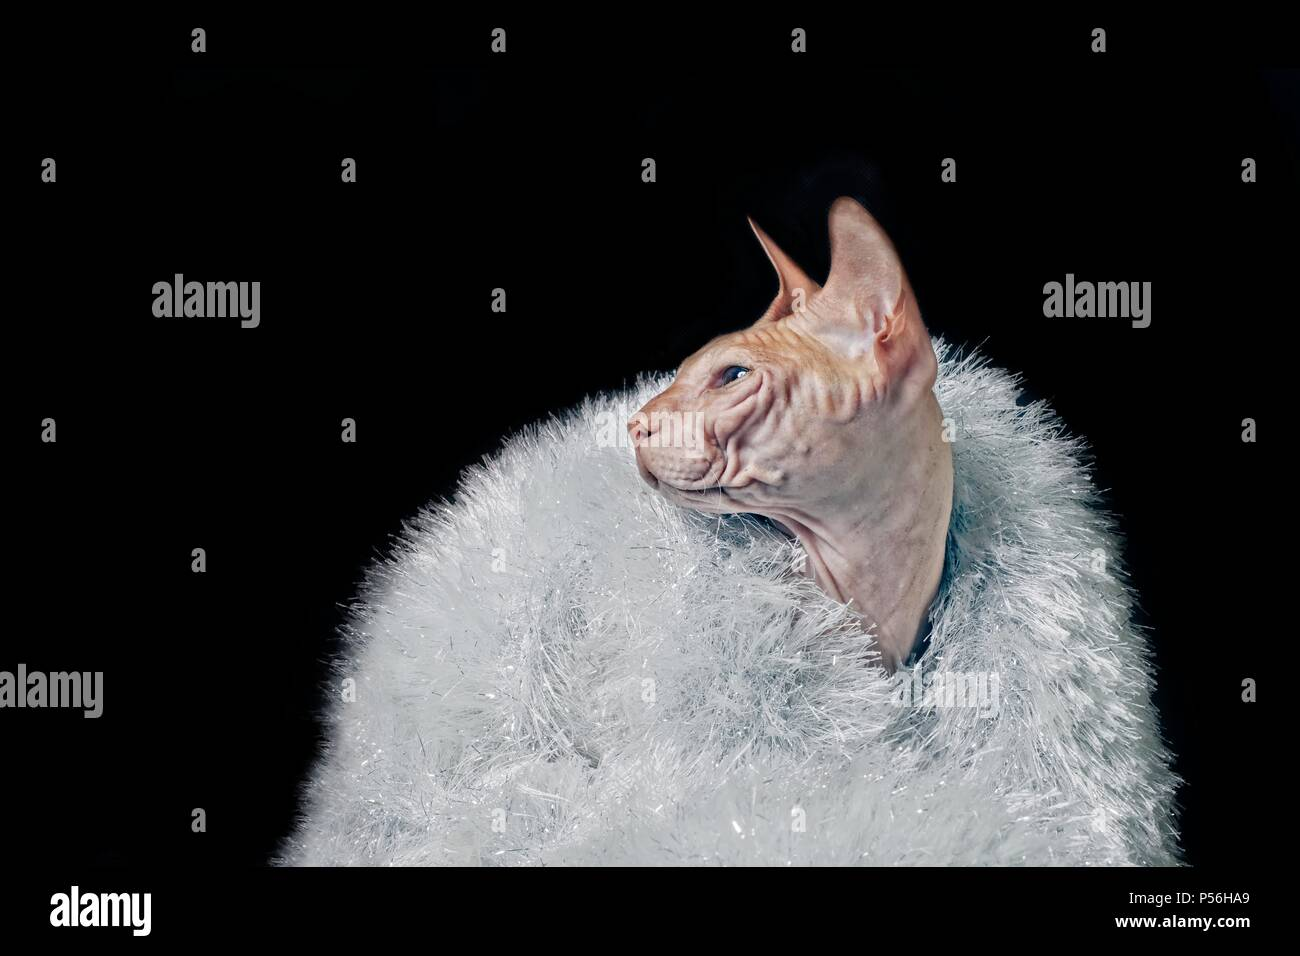 Portrait Of a sphynx cat wearing tinsel - isolated on black background. - Stock Image